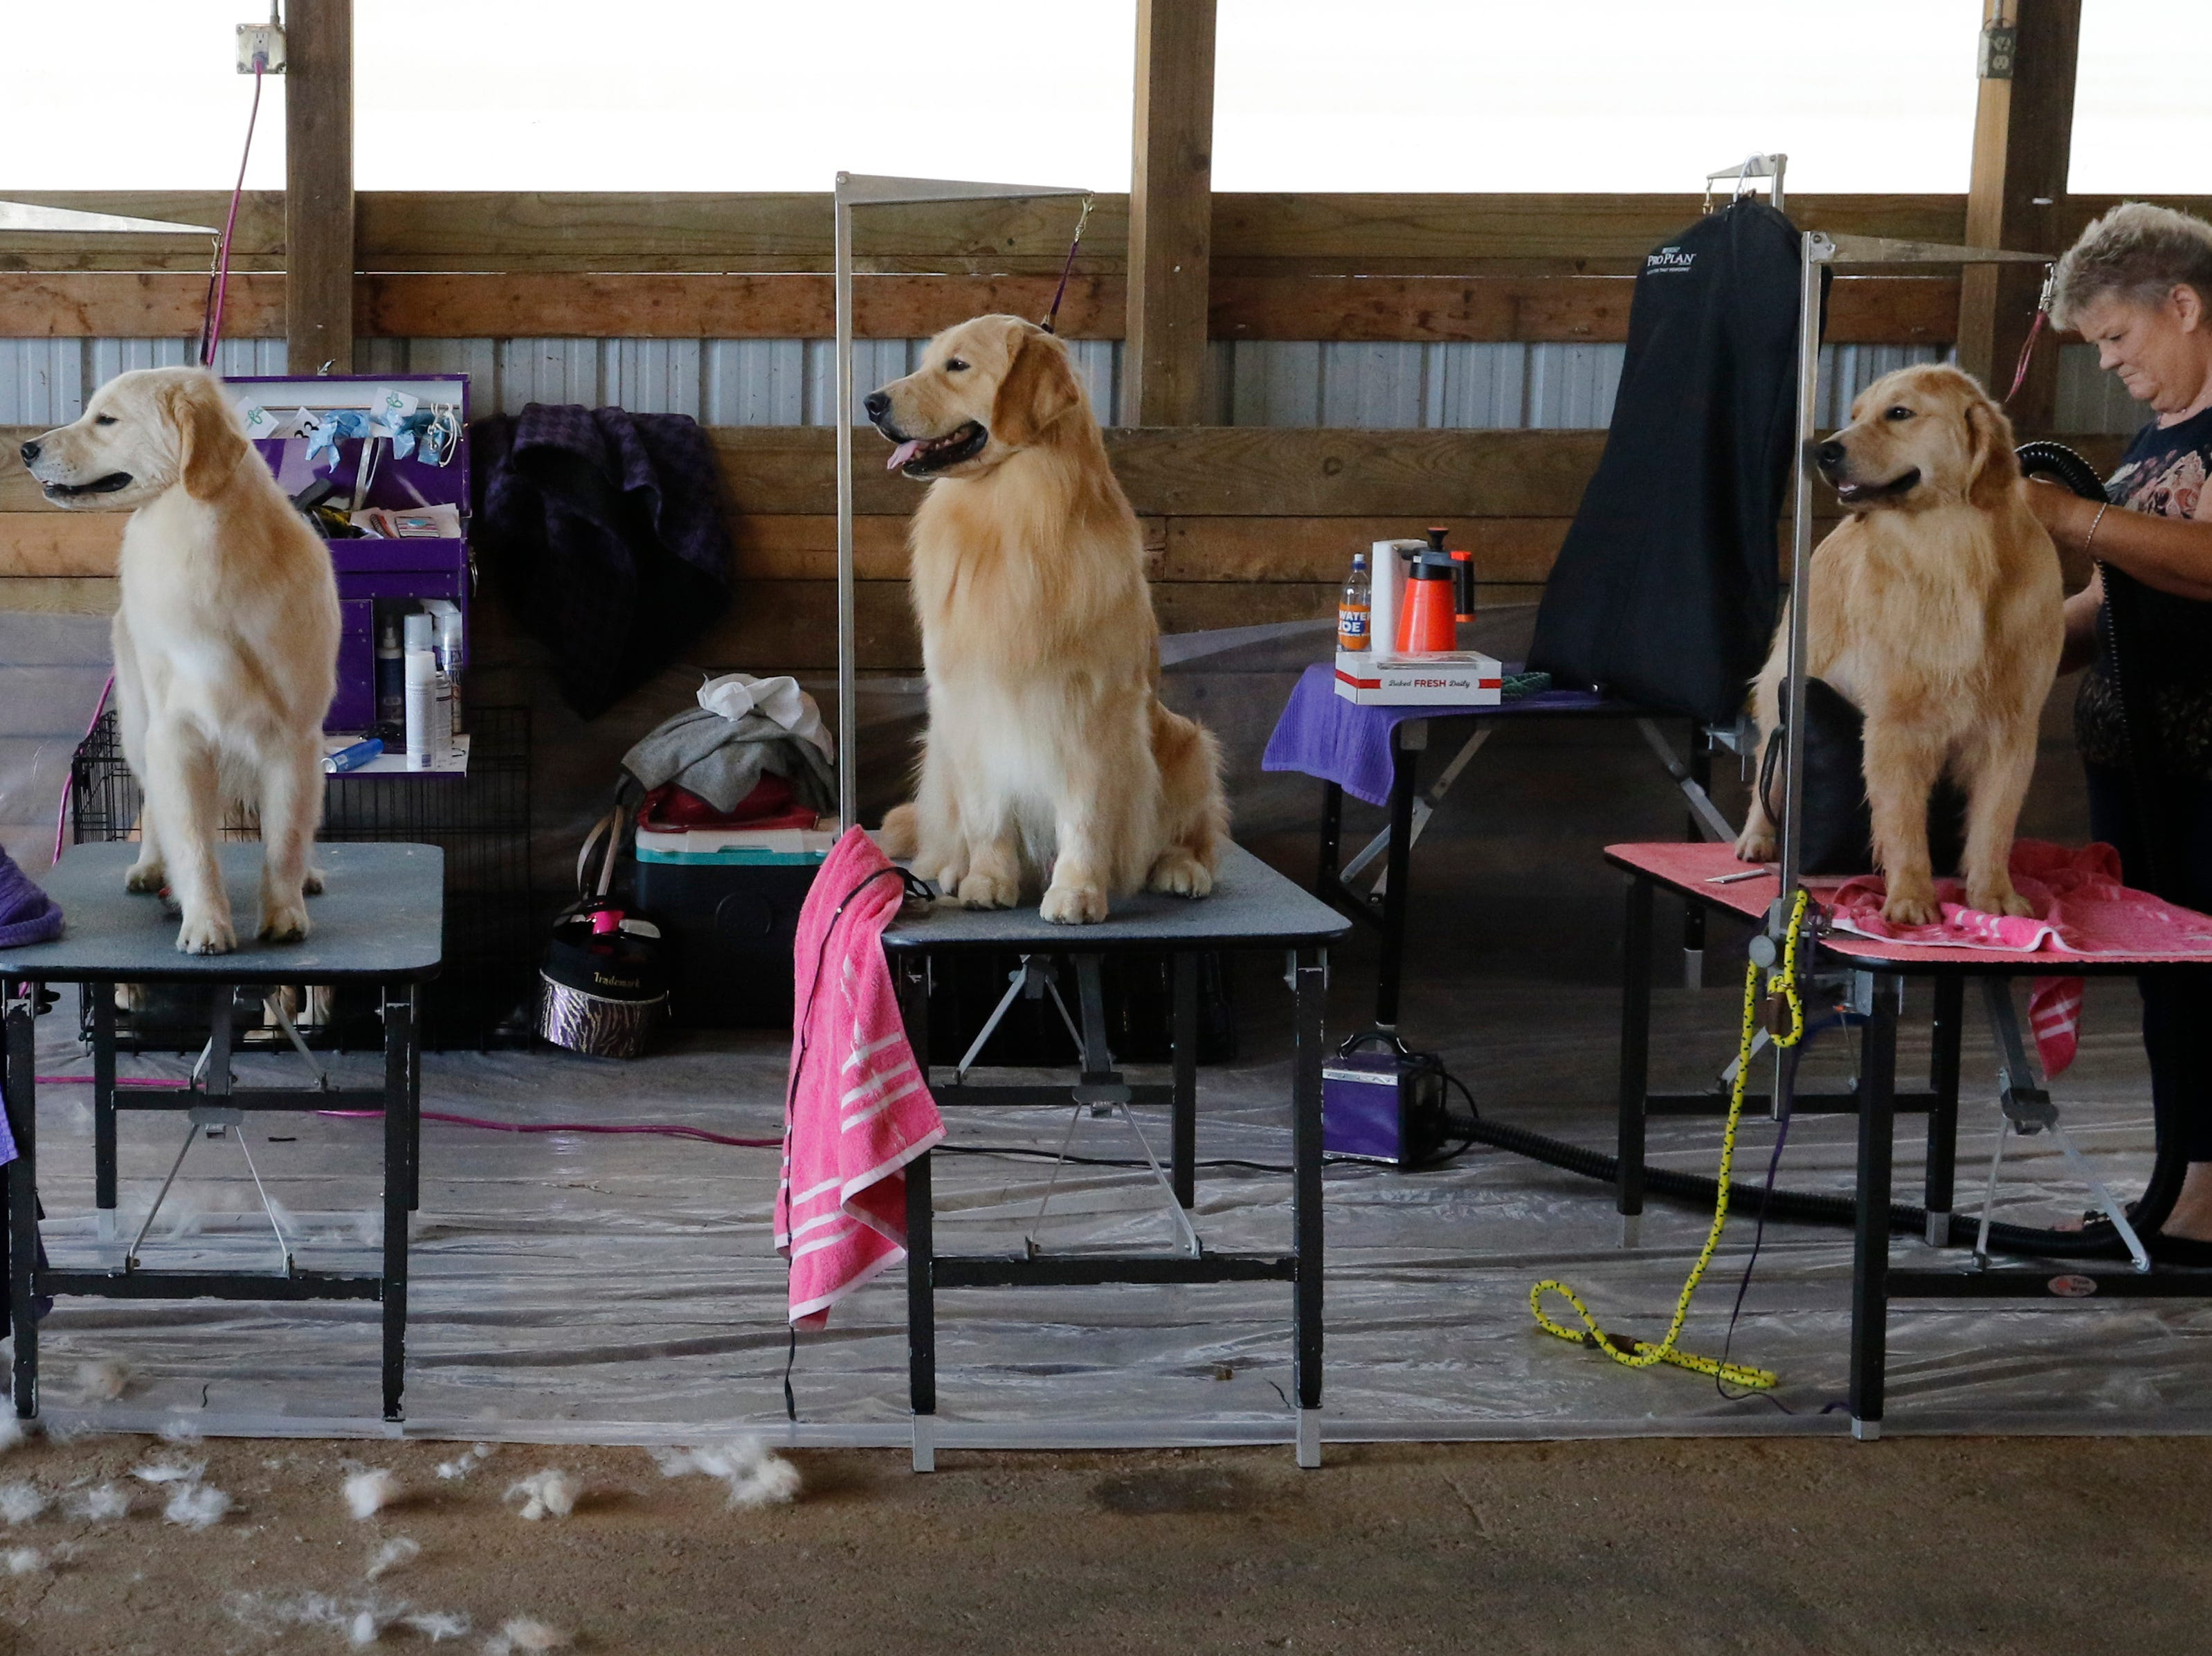 Debbie Oster grooms Fiona, a golden retriever, right, next to Sullivan, left and Swayze, center, as they all prepare to compete during the Marshfield Area Kennel Club's All-Breed Dog Show, Obedience Trials and Rally Trials at the Central Wisconsin Fairgrounds in Marshfield Saturday, August 18, 2018.